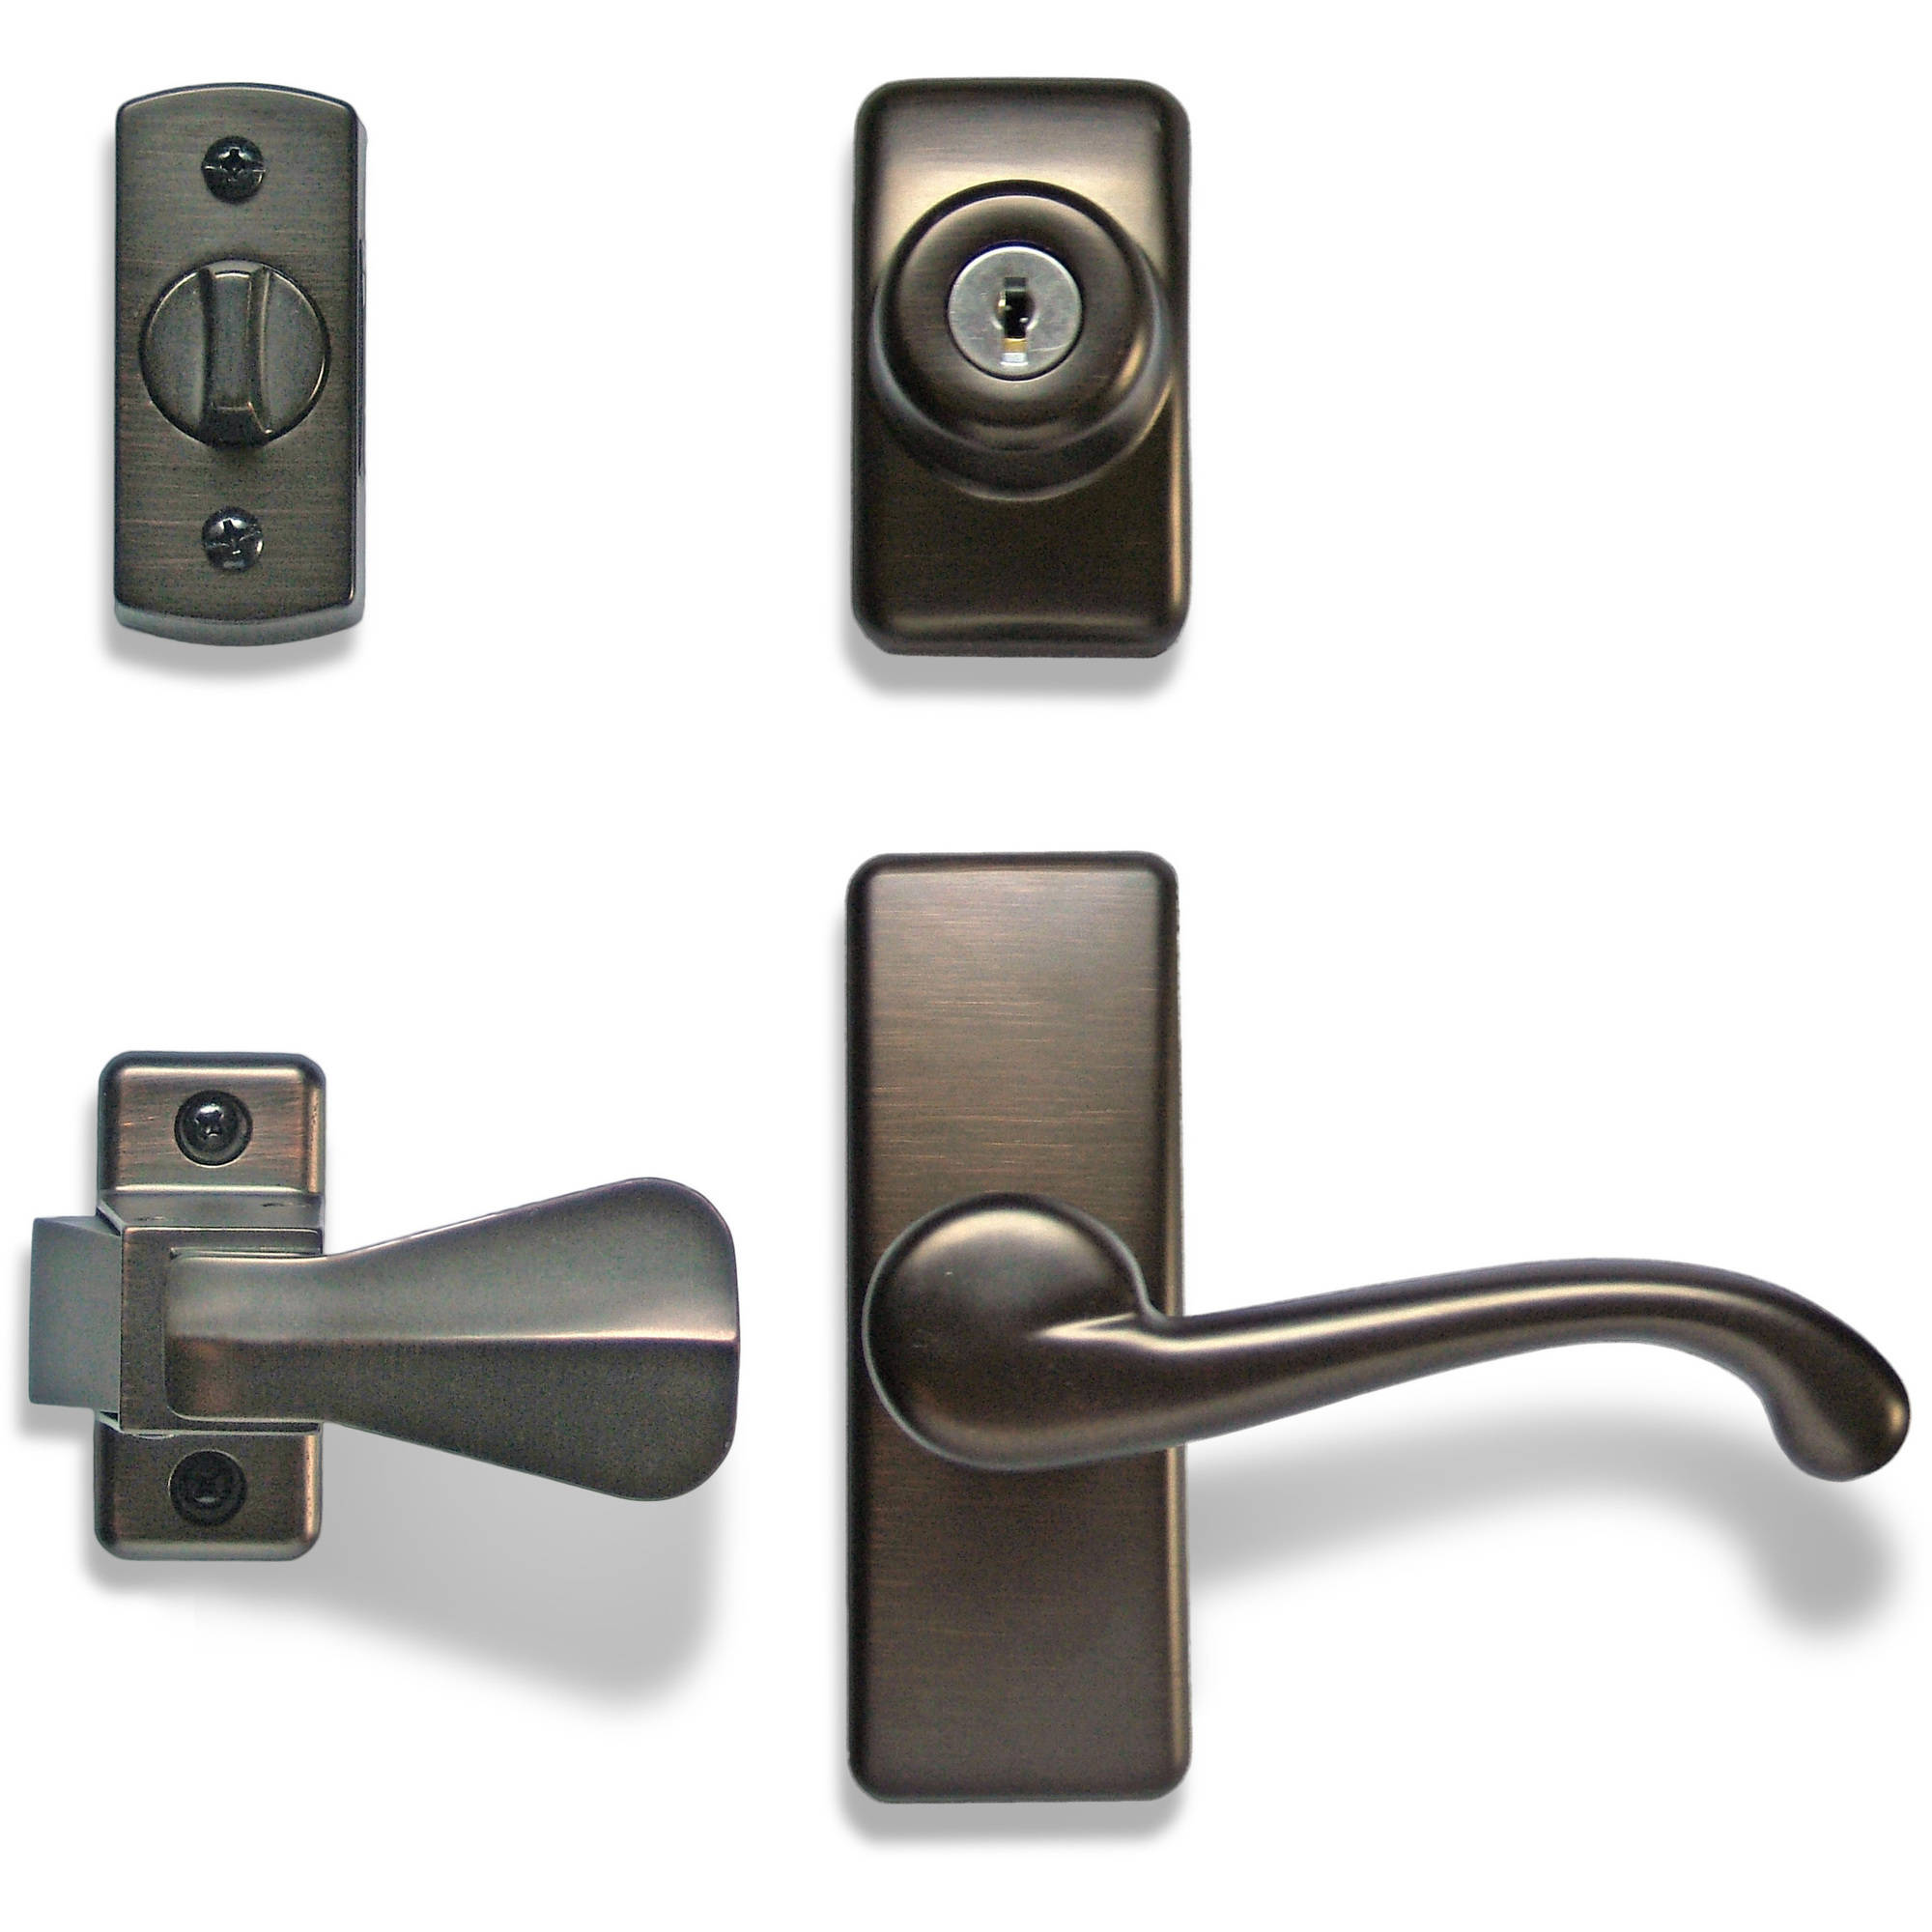 whites white screen depot latch washburn p door latches wright handle the surface products home storm